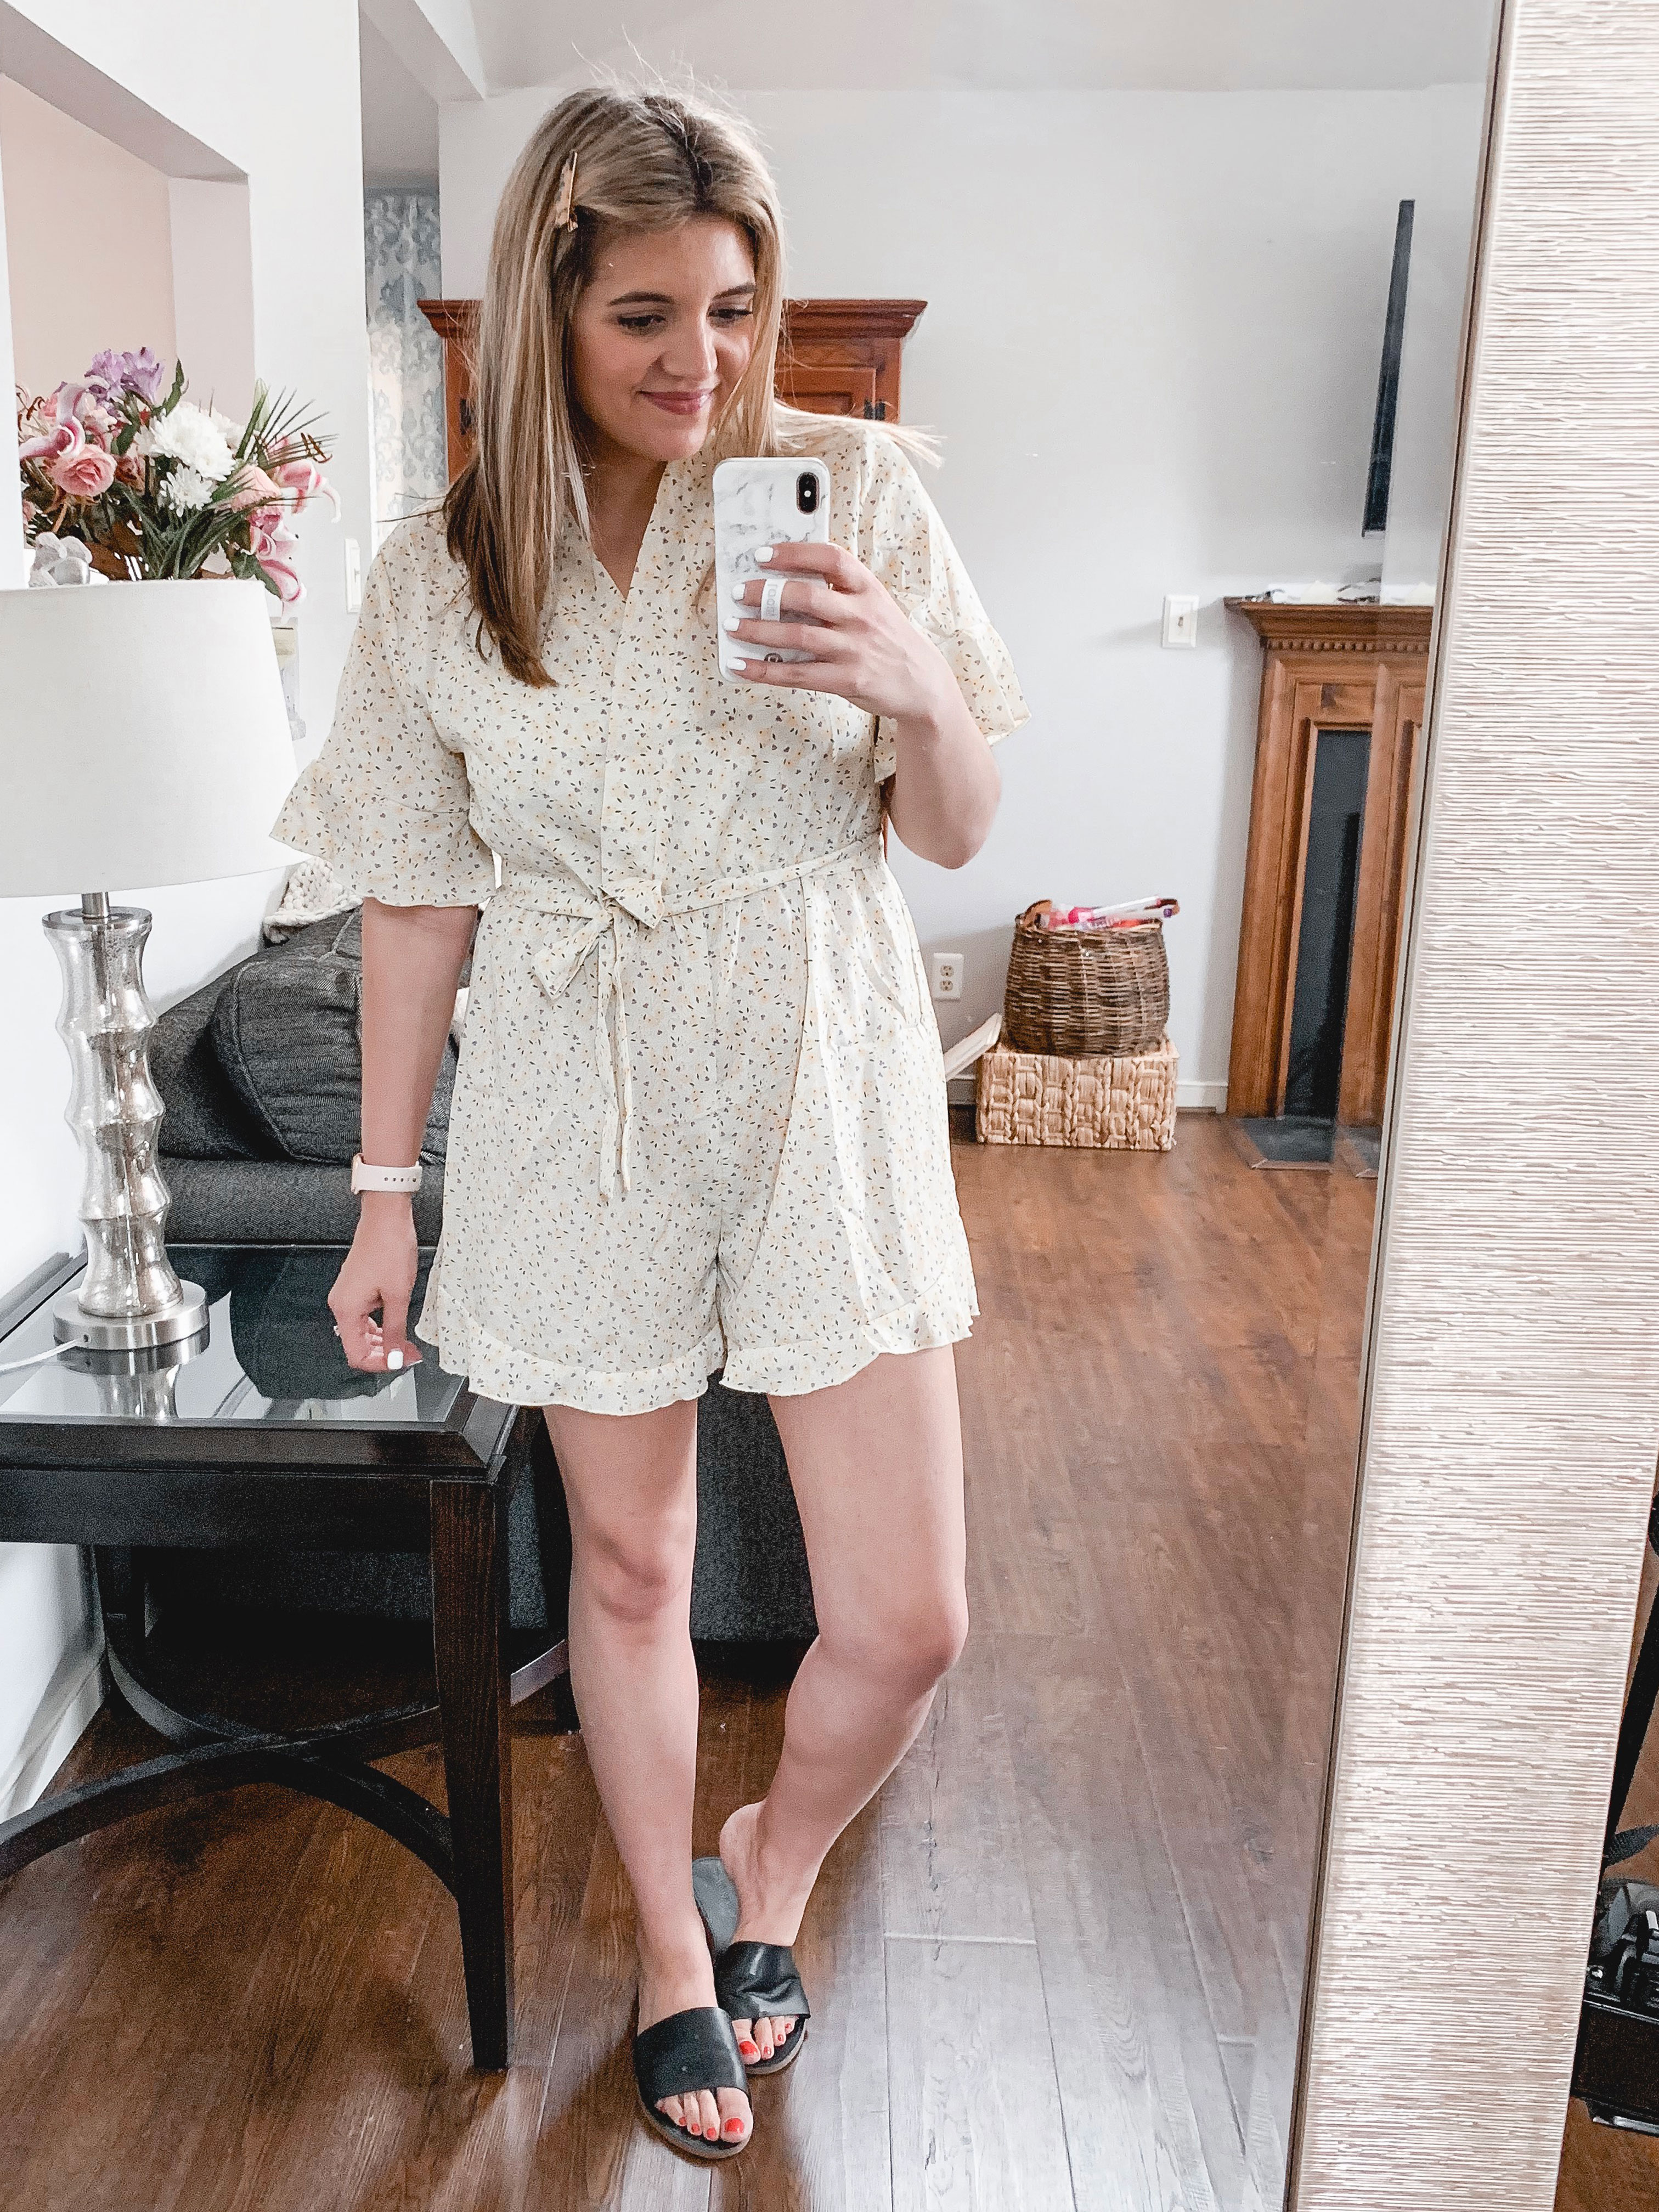 Affordable style blogger, Lauren Dix, tries on the best Amazon fashion finds from her May Amazon order! Amazon dresses, rompers, accessories and more!